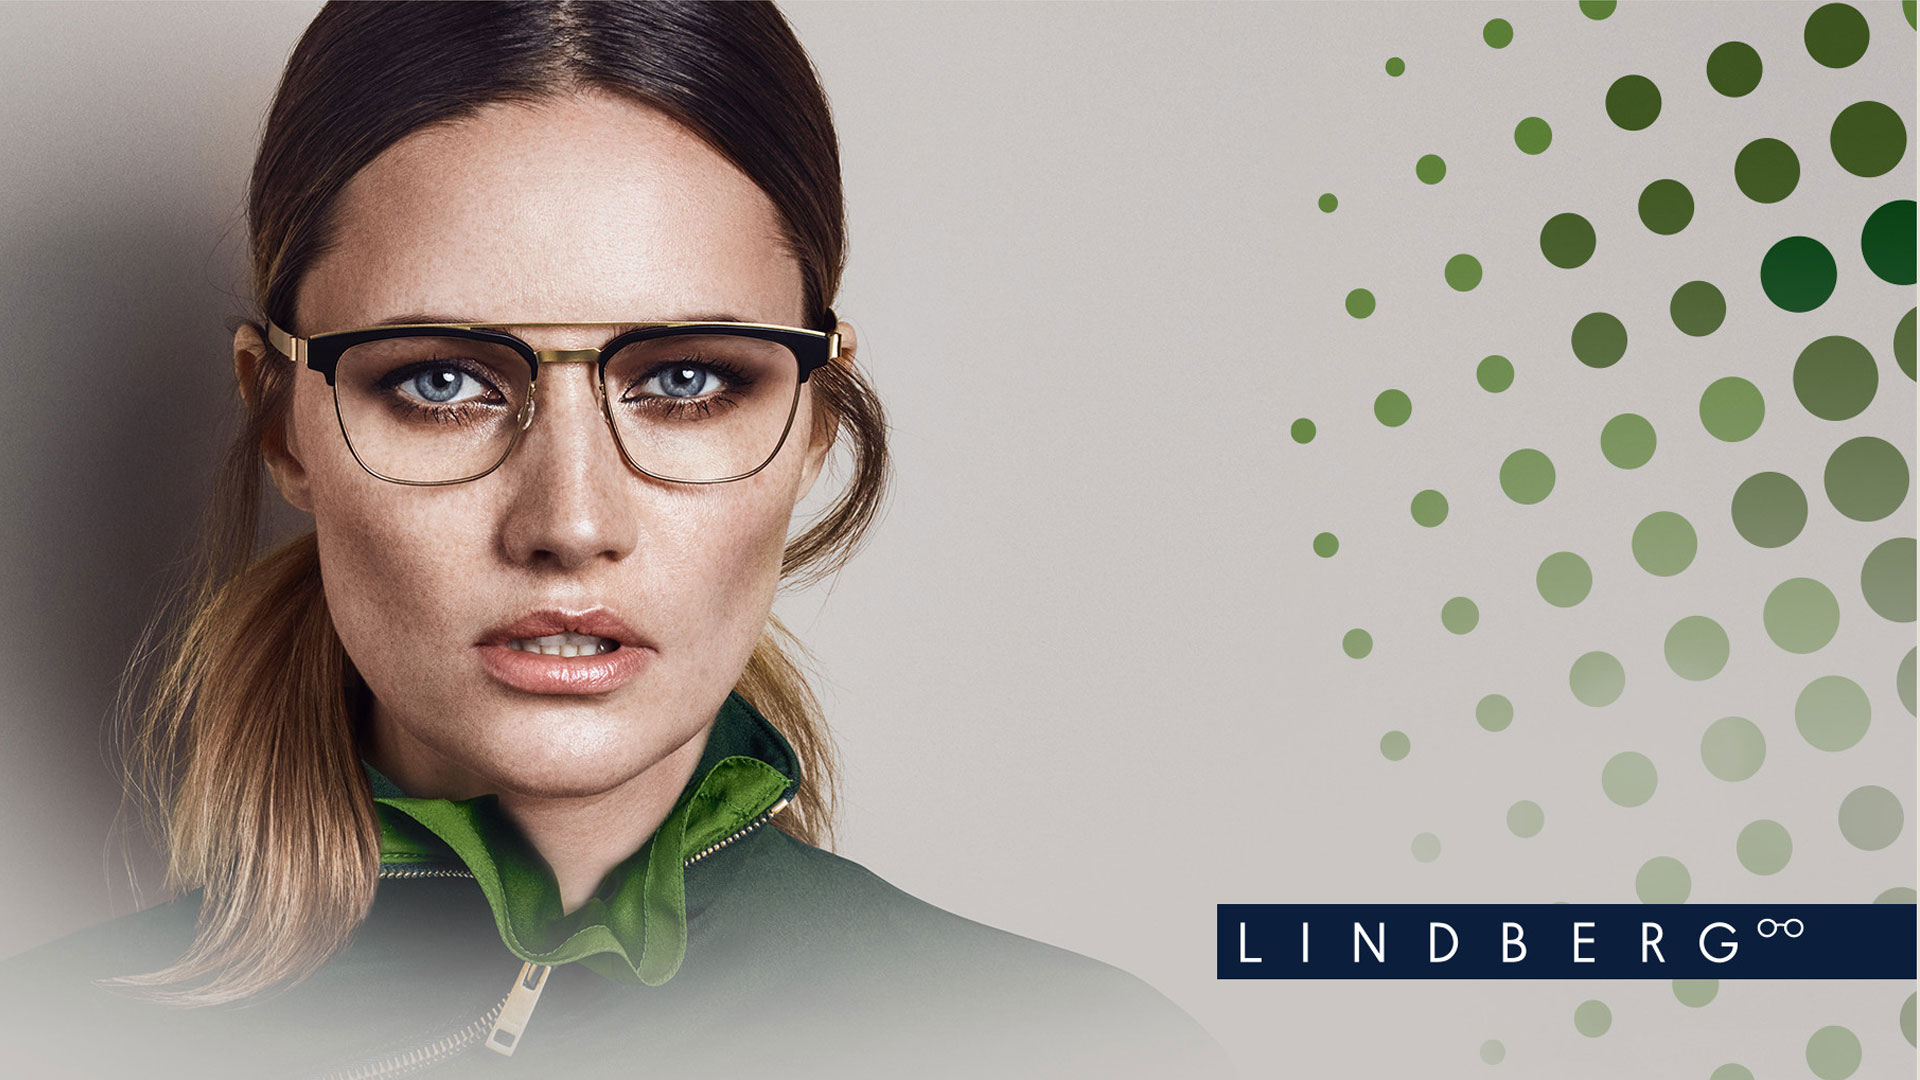 designer glasses London Lindberg female model